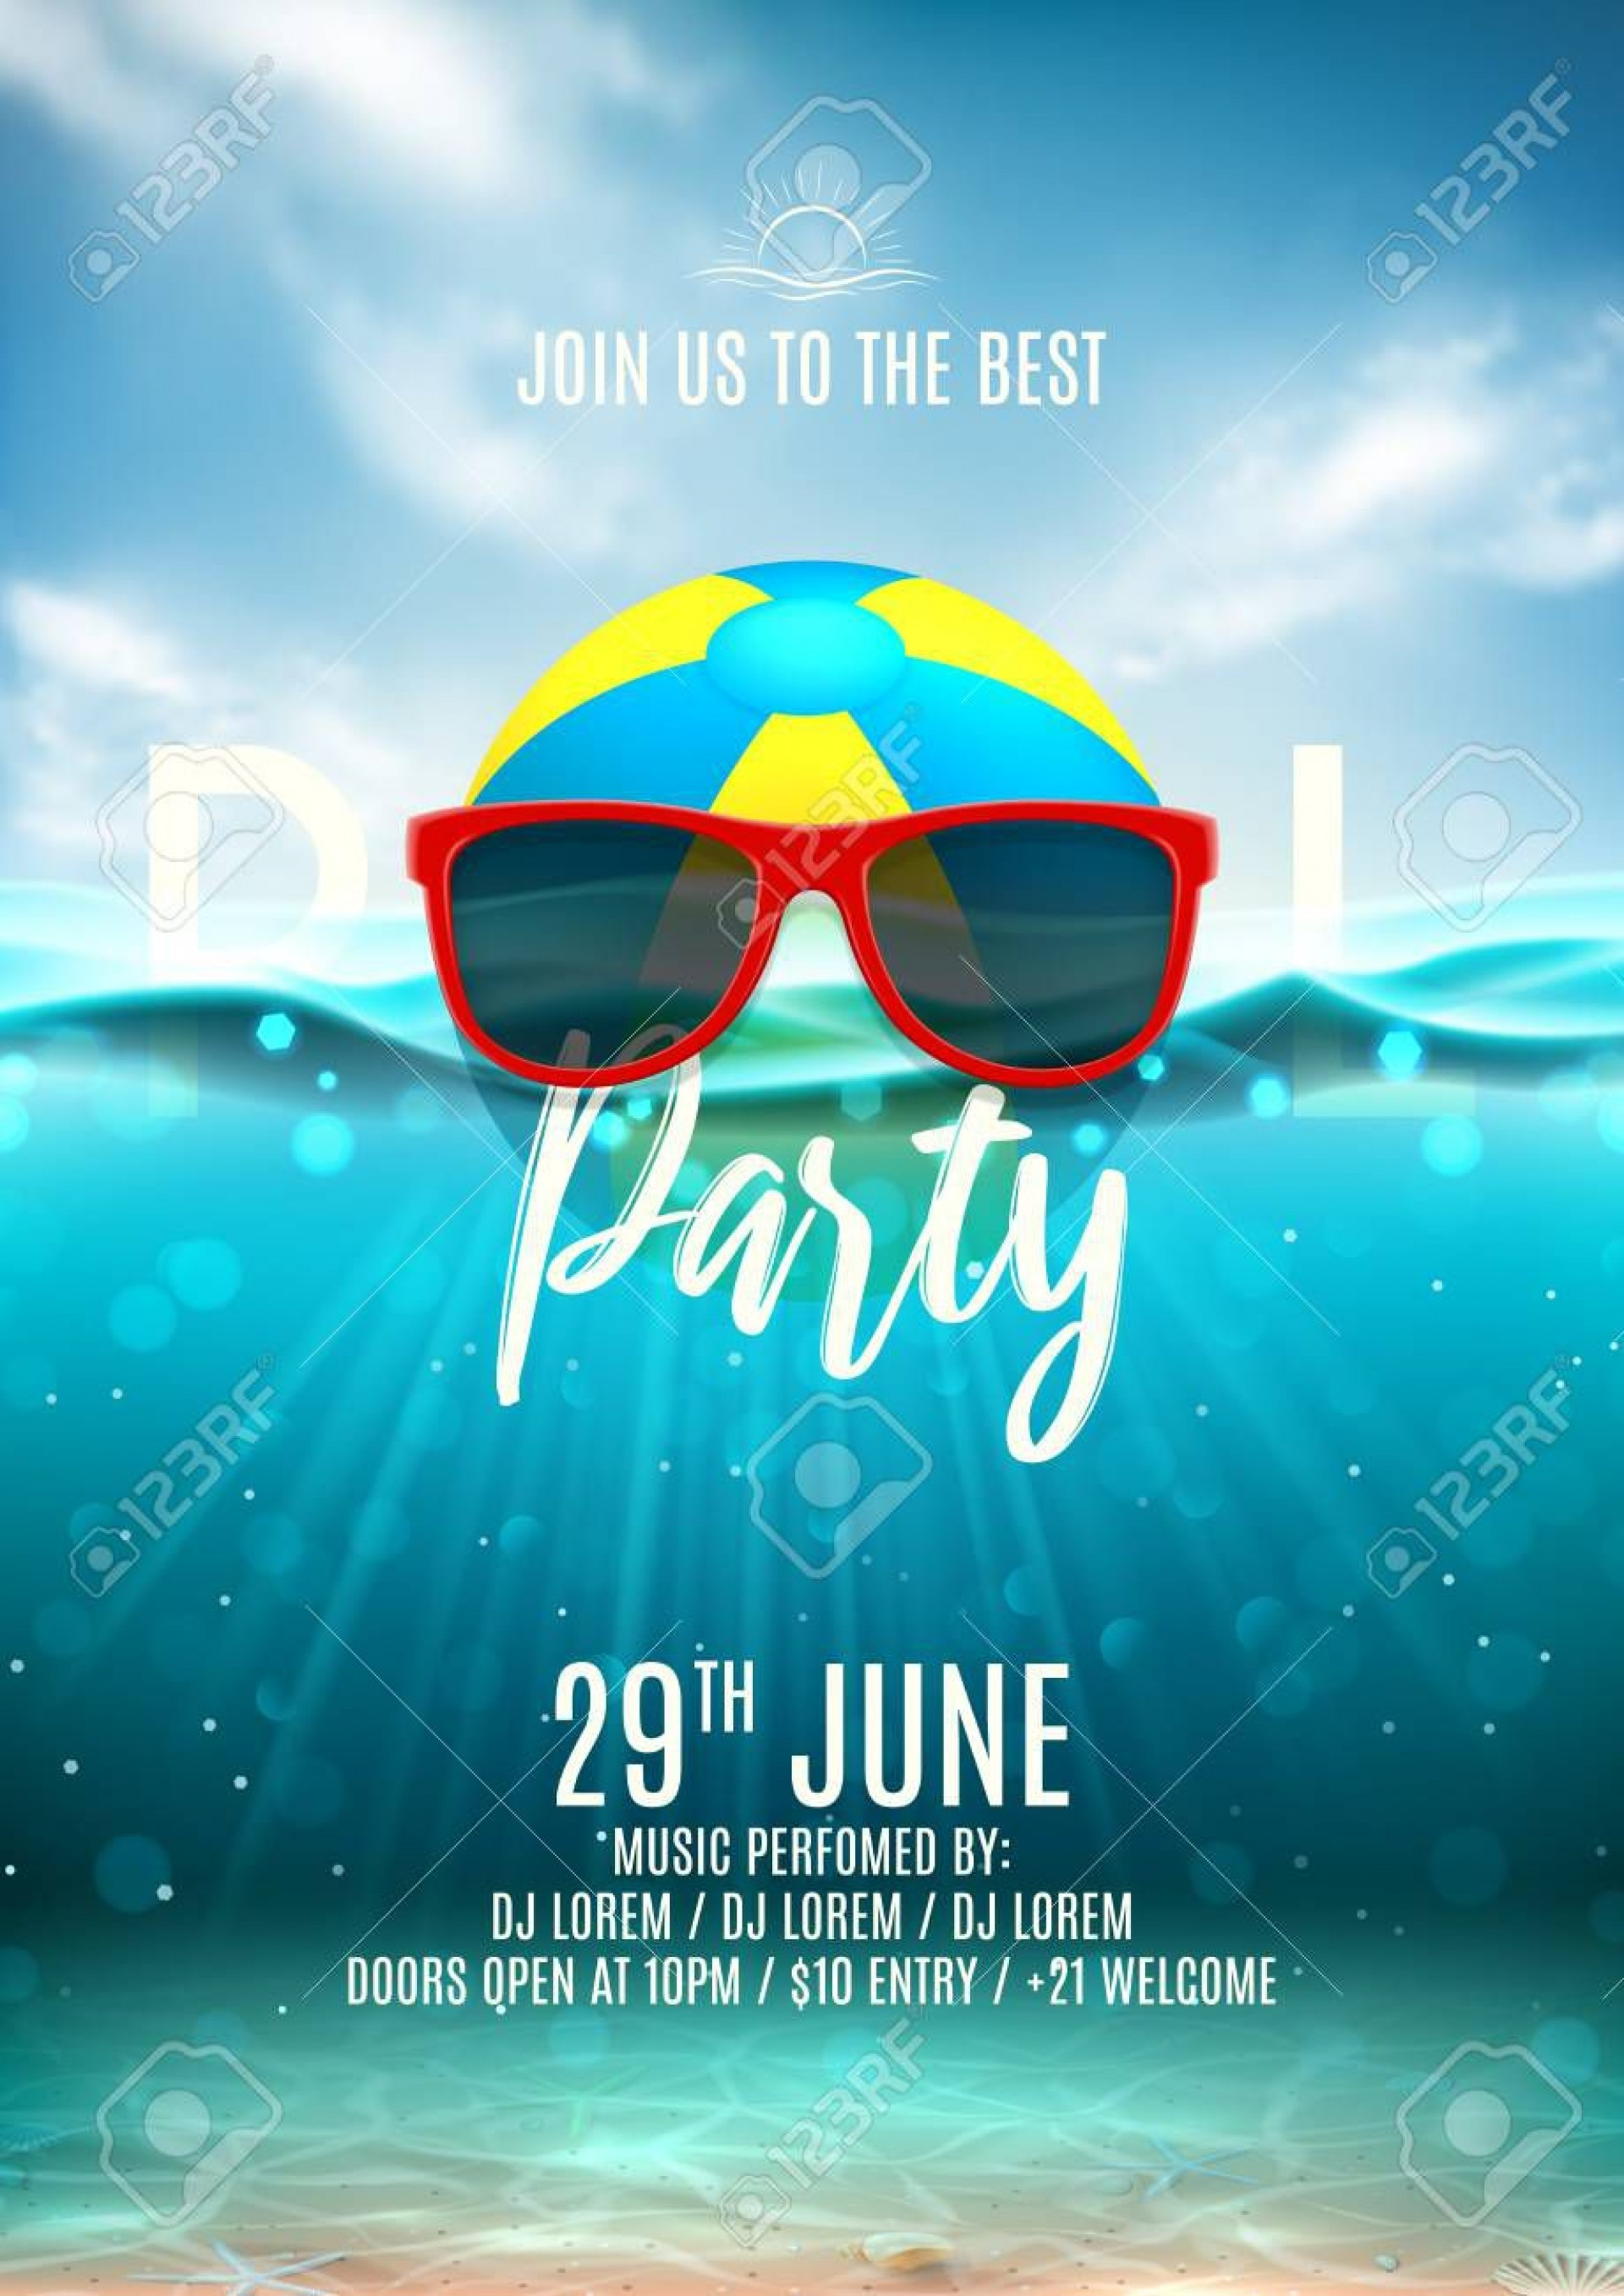 003 Unusual Pool Party Flyer Template Free High Definition  Photoshop Psd1920